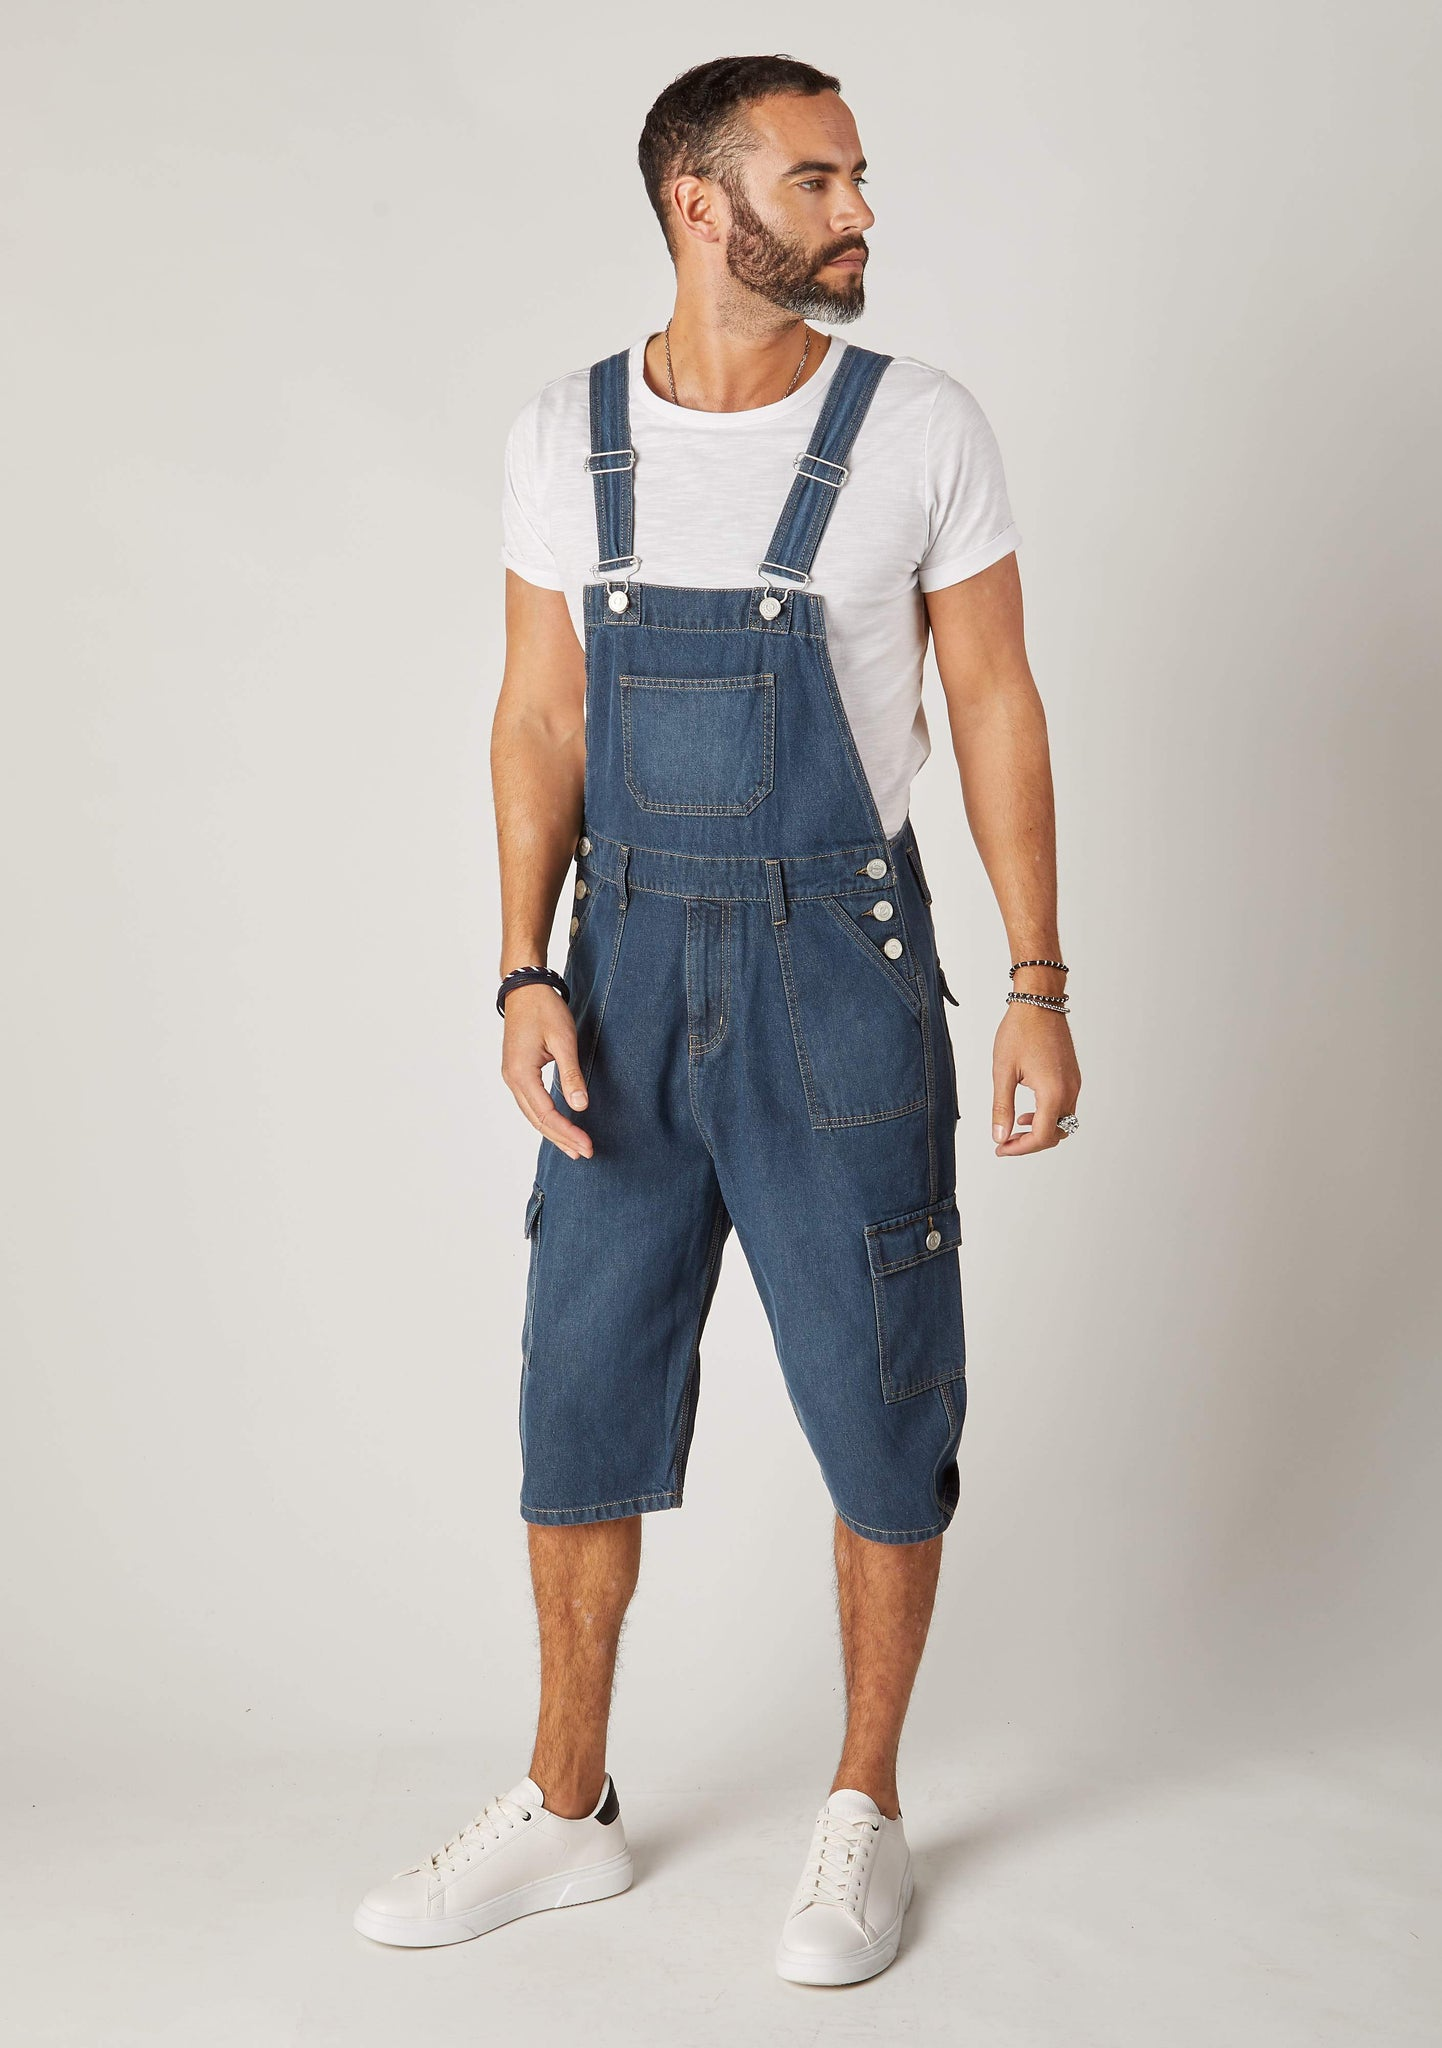 Full slightly angled frontal pose looking to left wearing dungarees shorts for men with focus on adjustable straps.